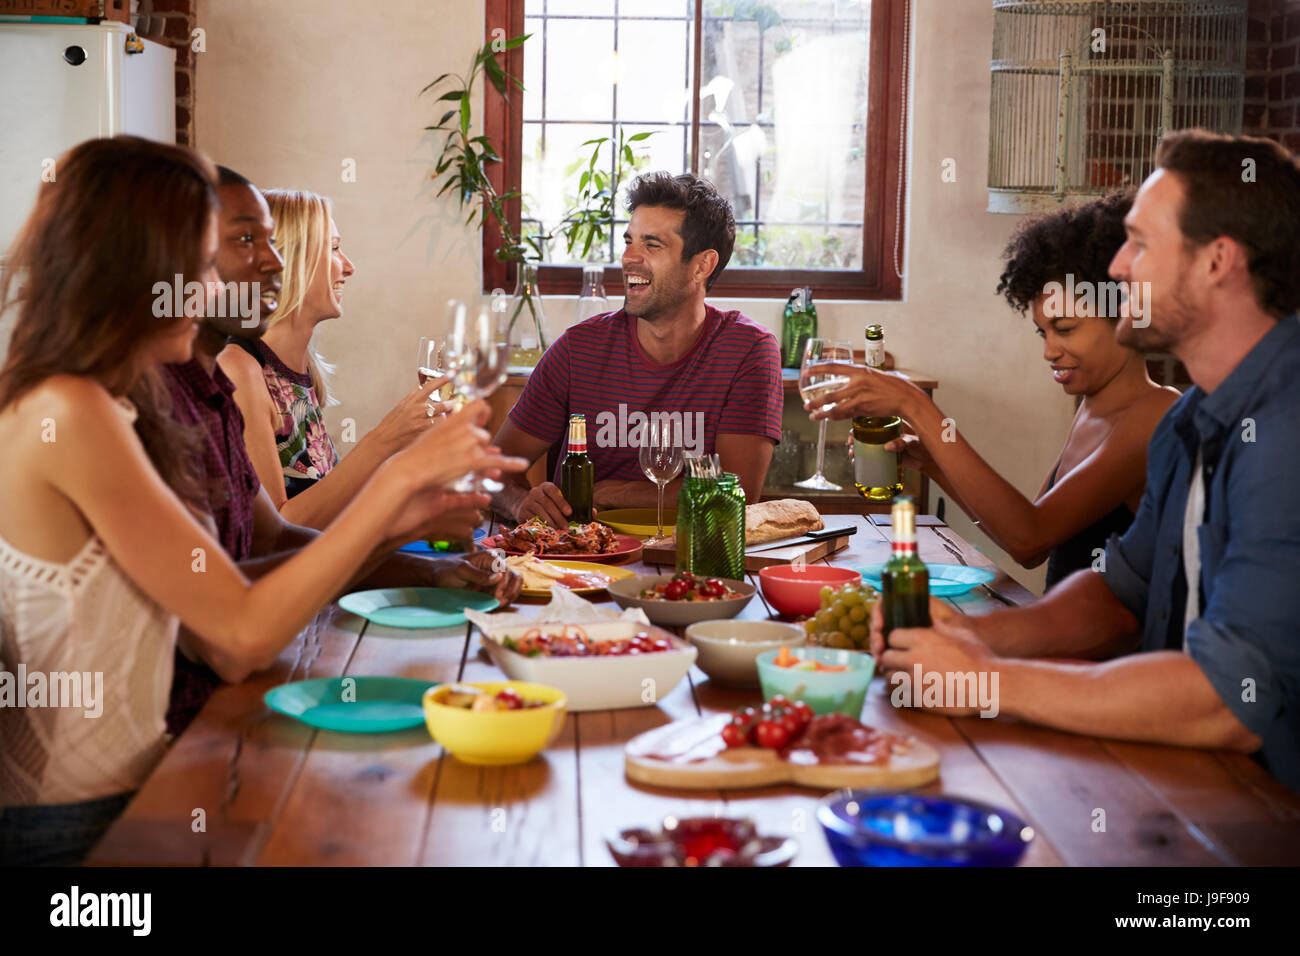 Six young adult friends sitting at table for a dinner party - Stock Image